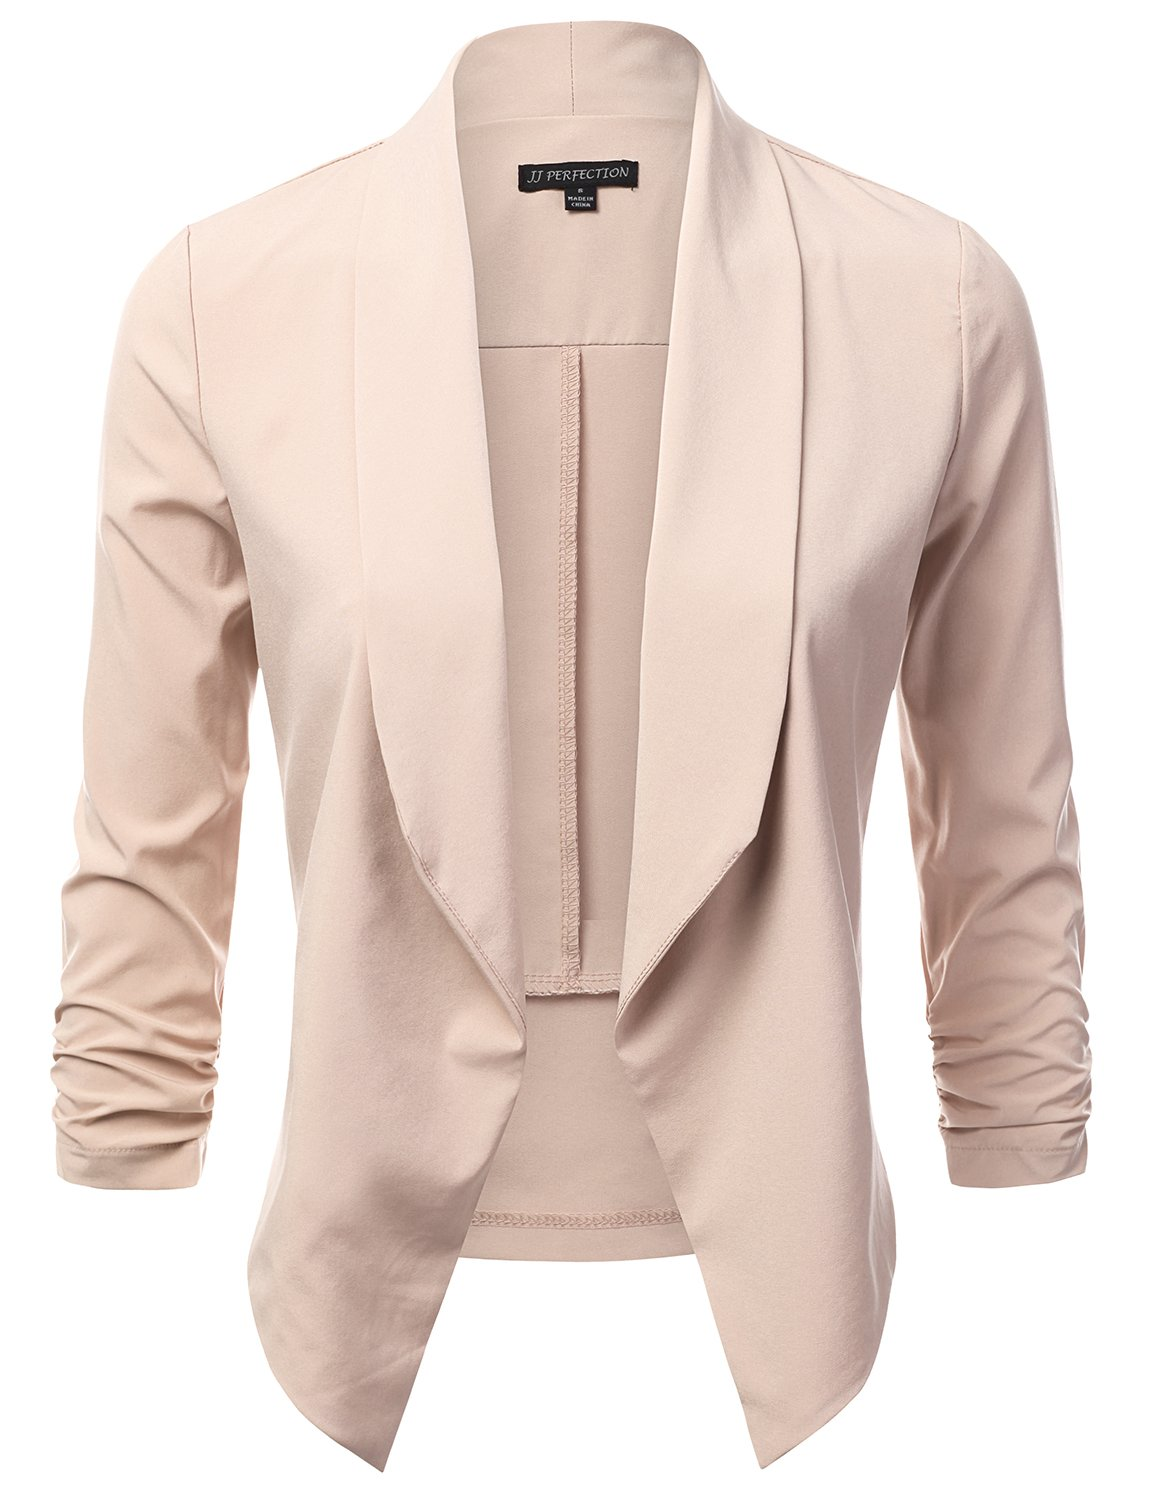 JJ Perfection Women's Lightweight Chiffon Ruched Sleeve Open-Front Blazer Beige S